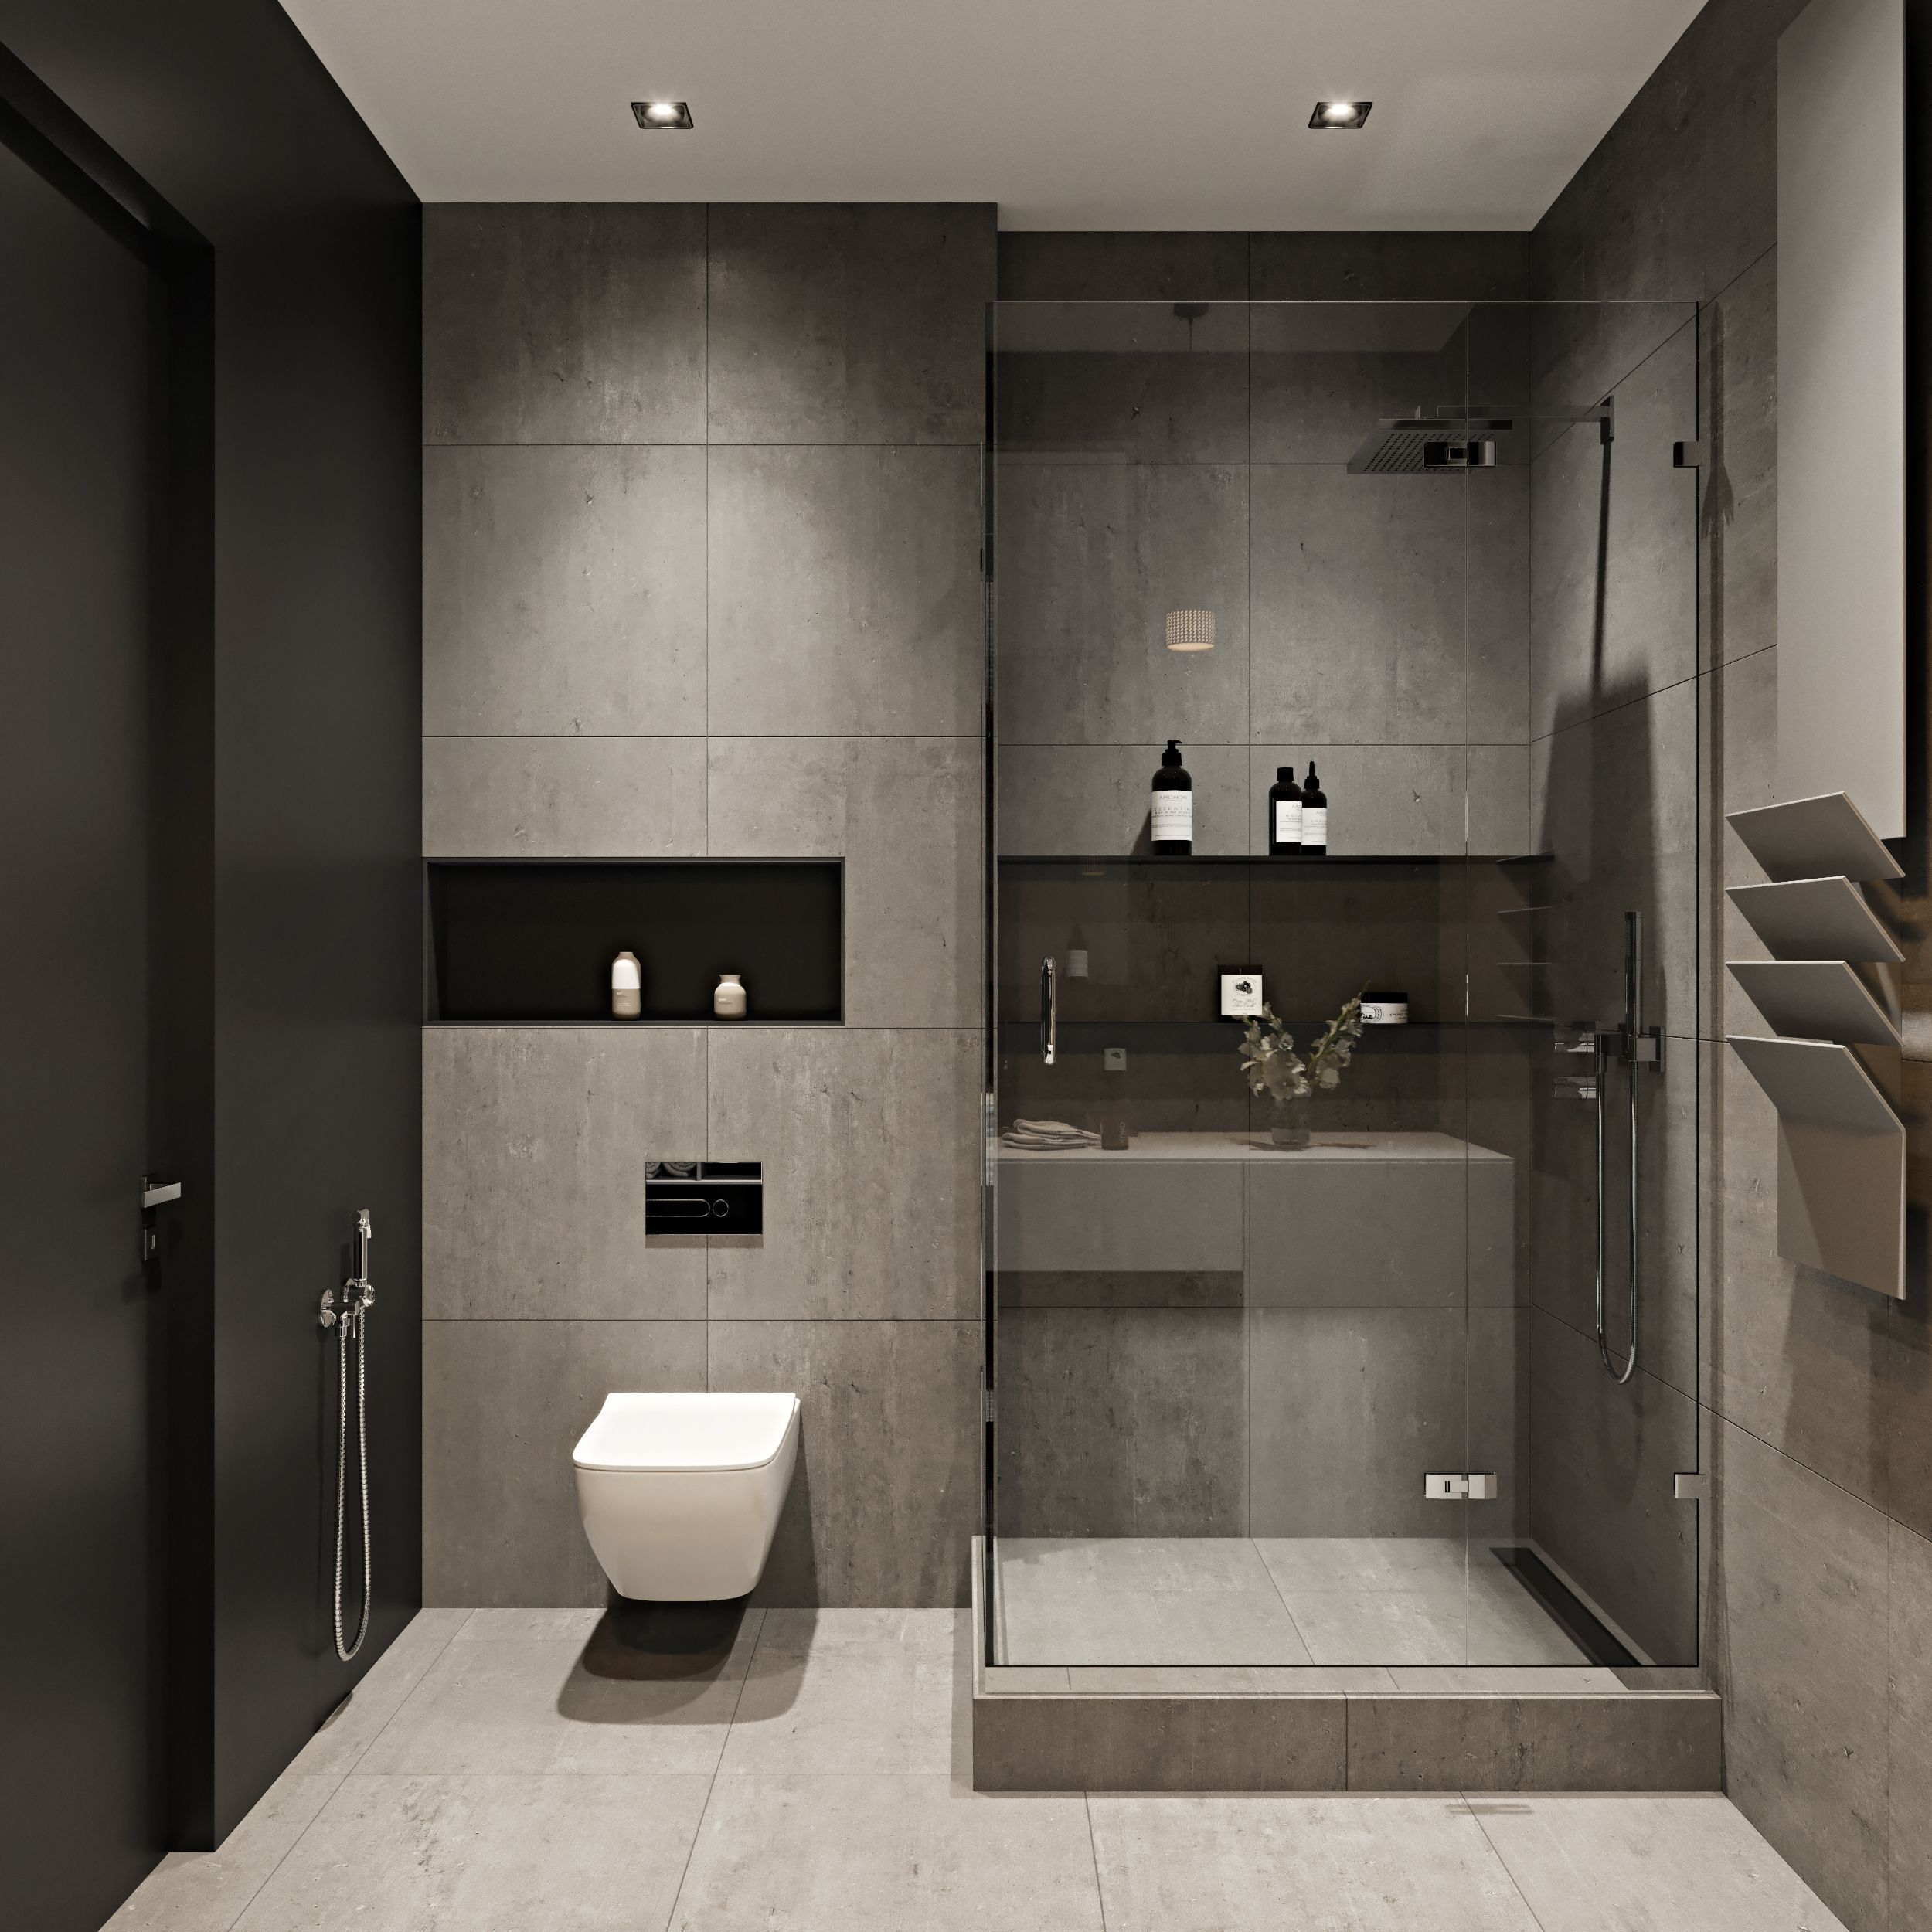 Presents For You The Best Designs About Small Bathroom Ideas Small Spaces Inspiration Floors S Small Washroom Design Modern Bathroom Design Washroom Design